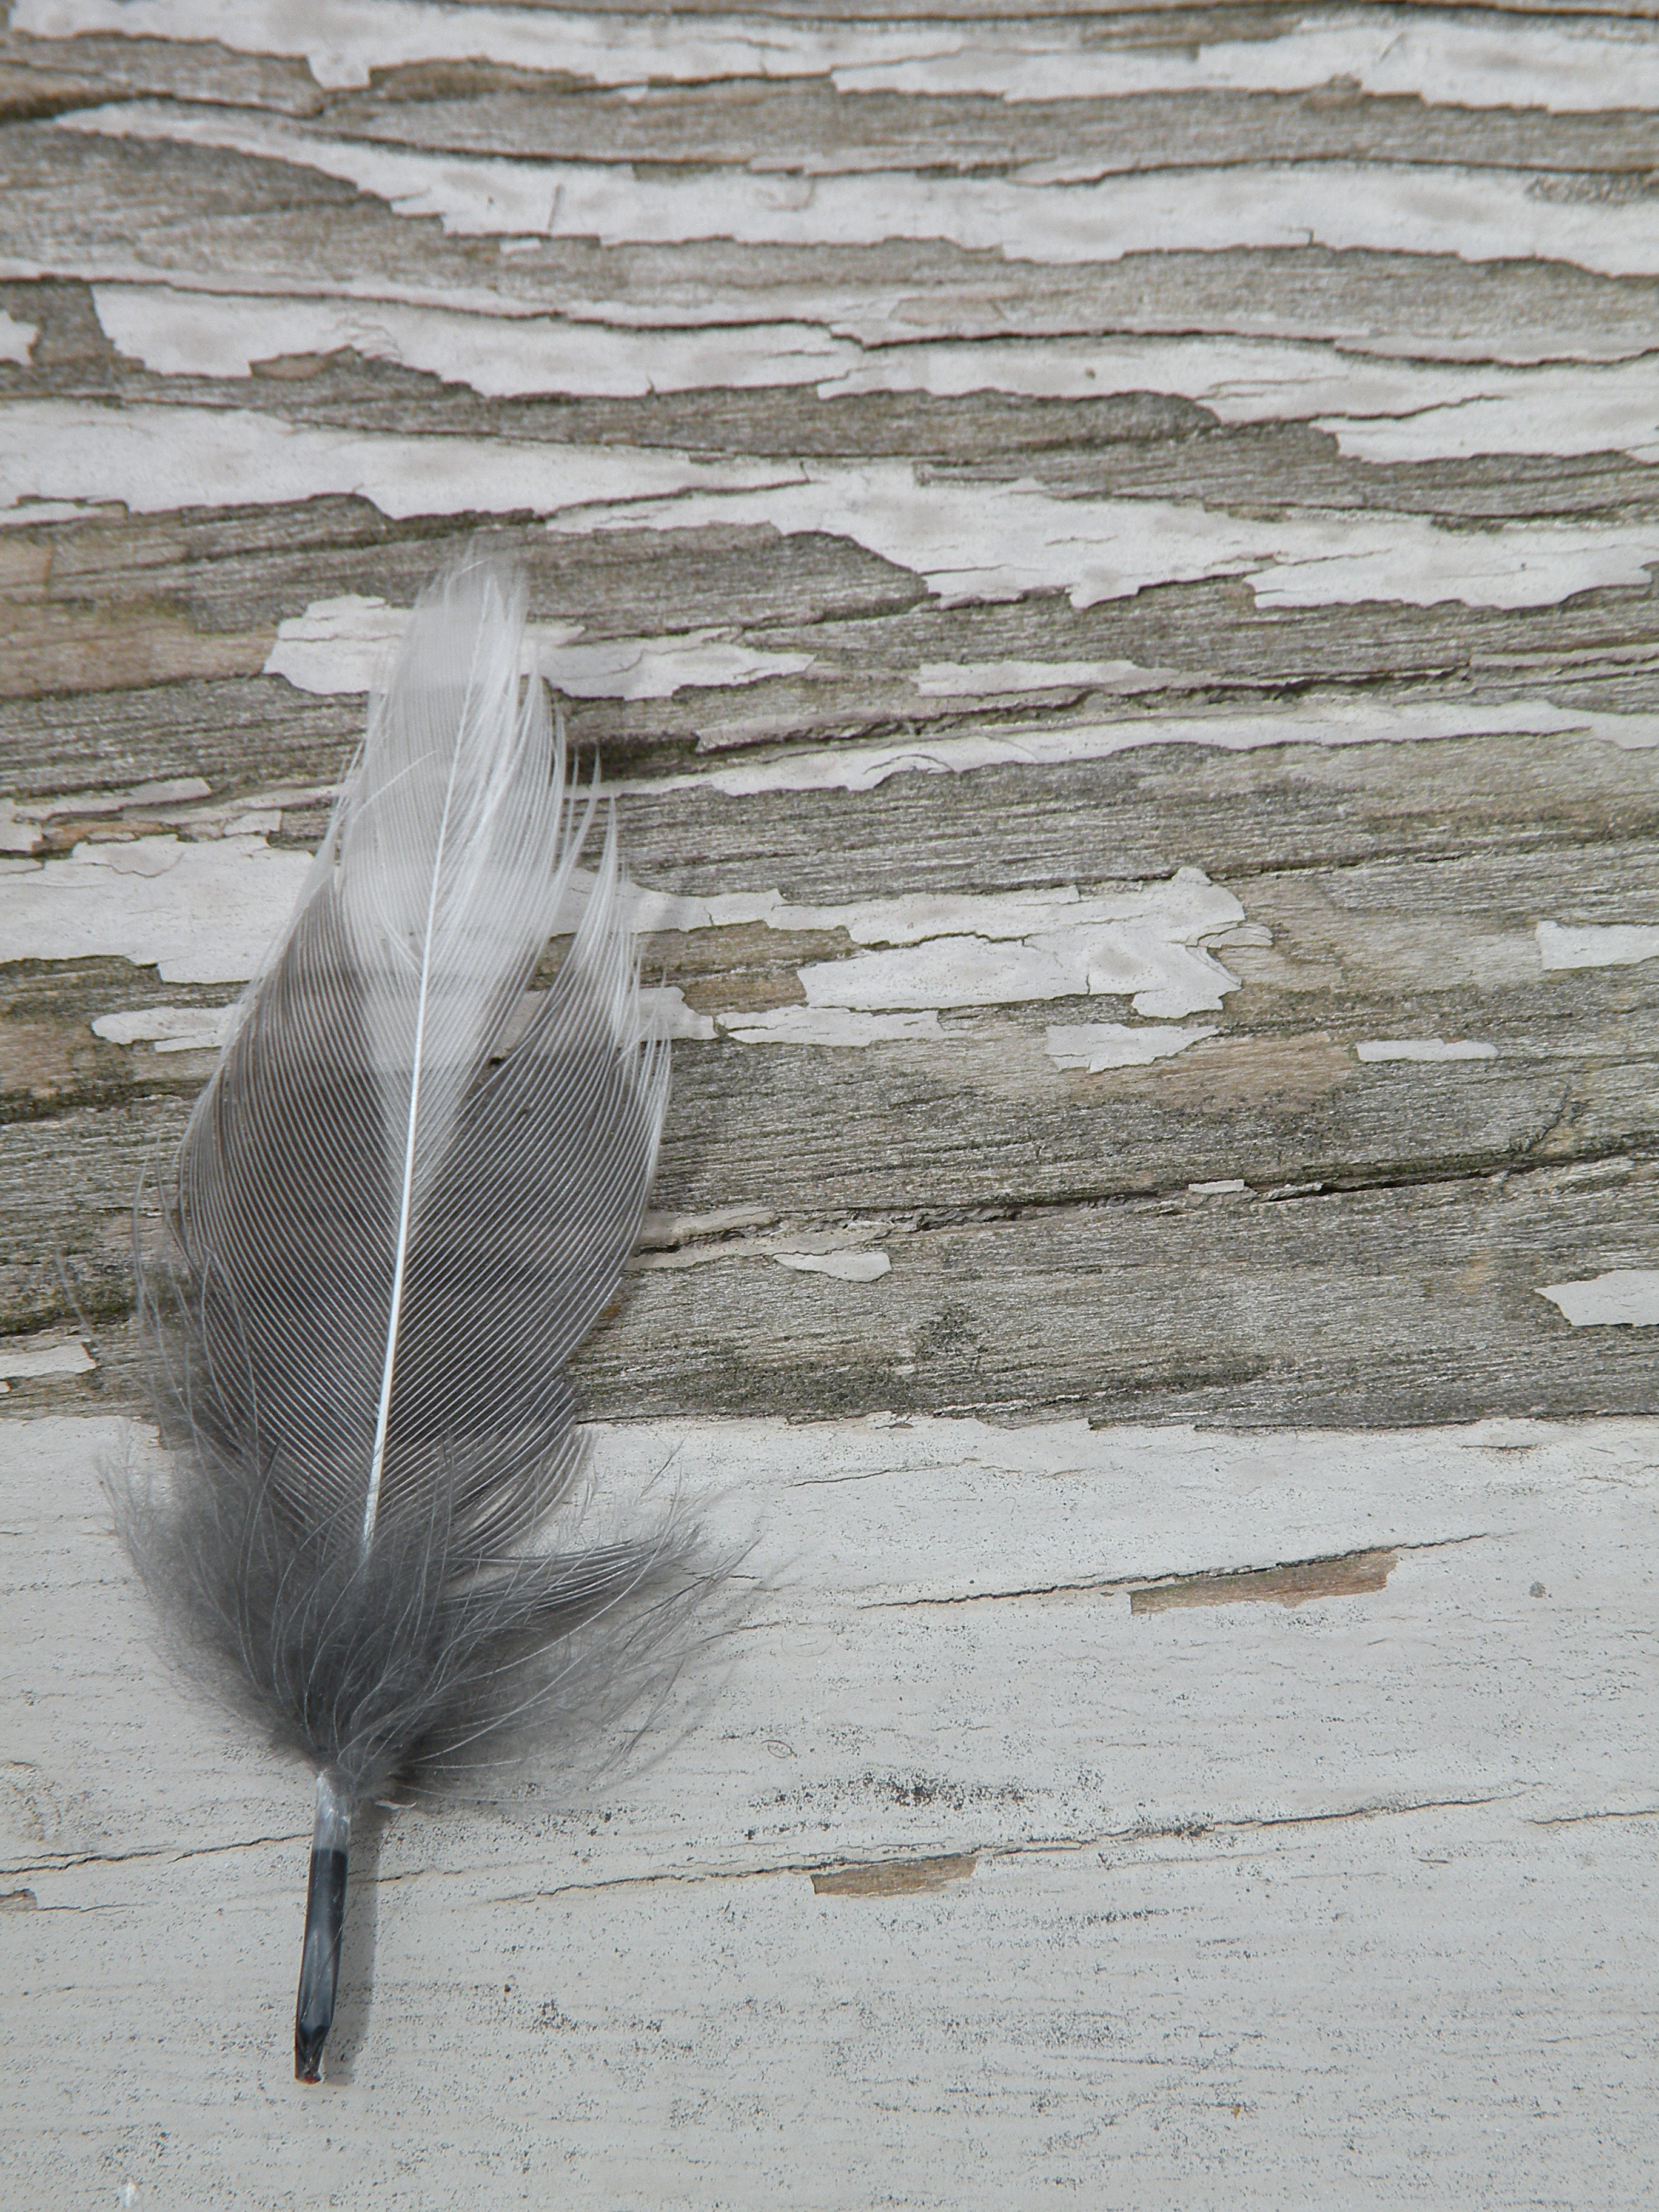 Lone Feather, Distressed, Feather, Wood, HQ Photo